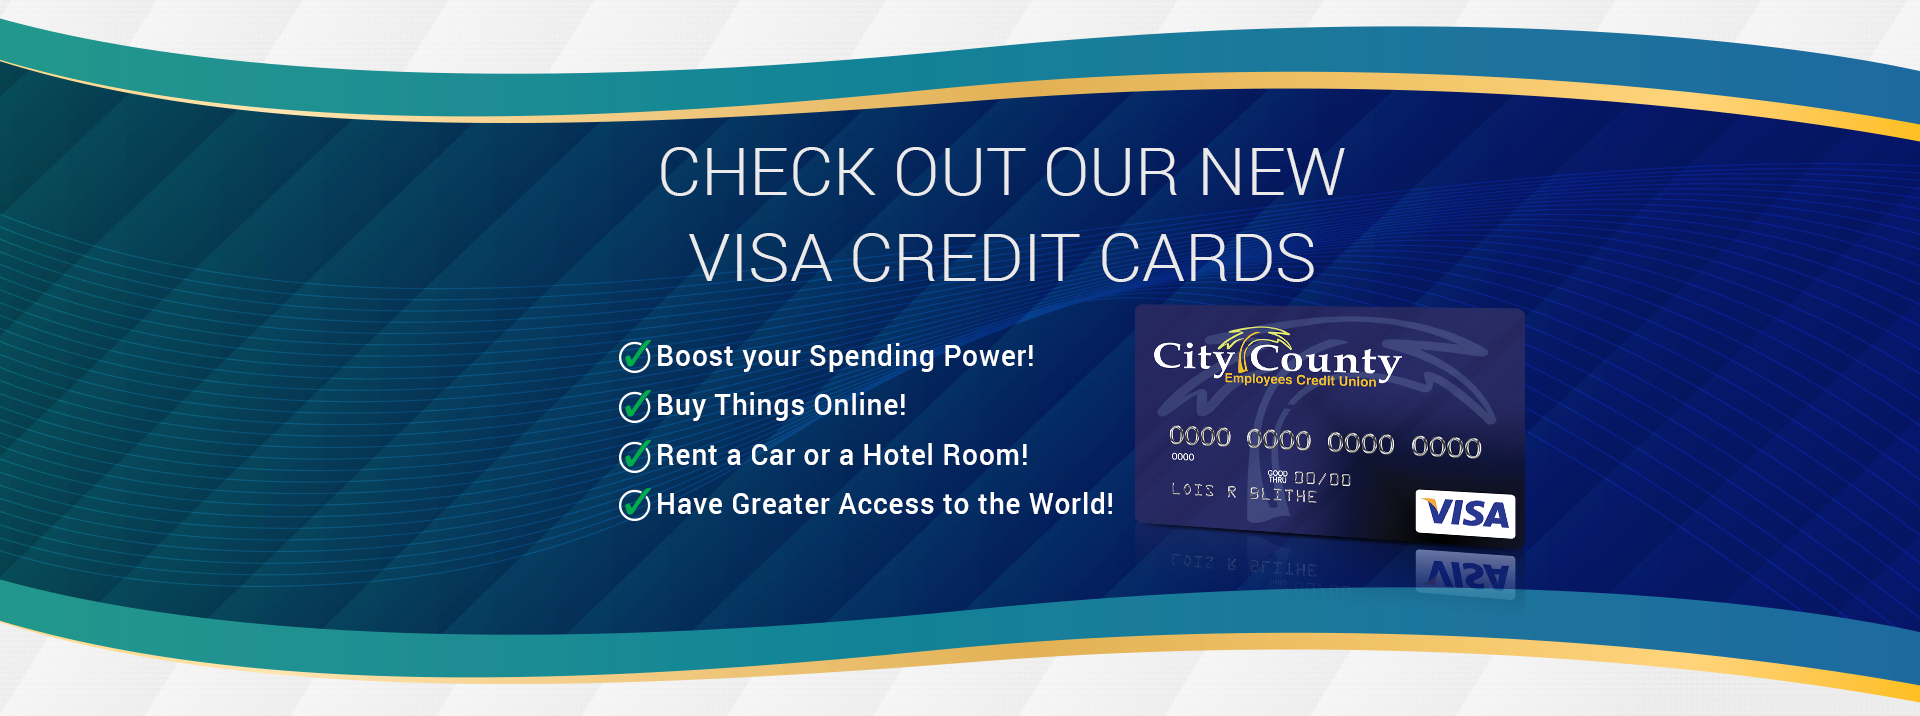 Check out our new visa credit cards